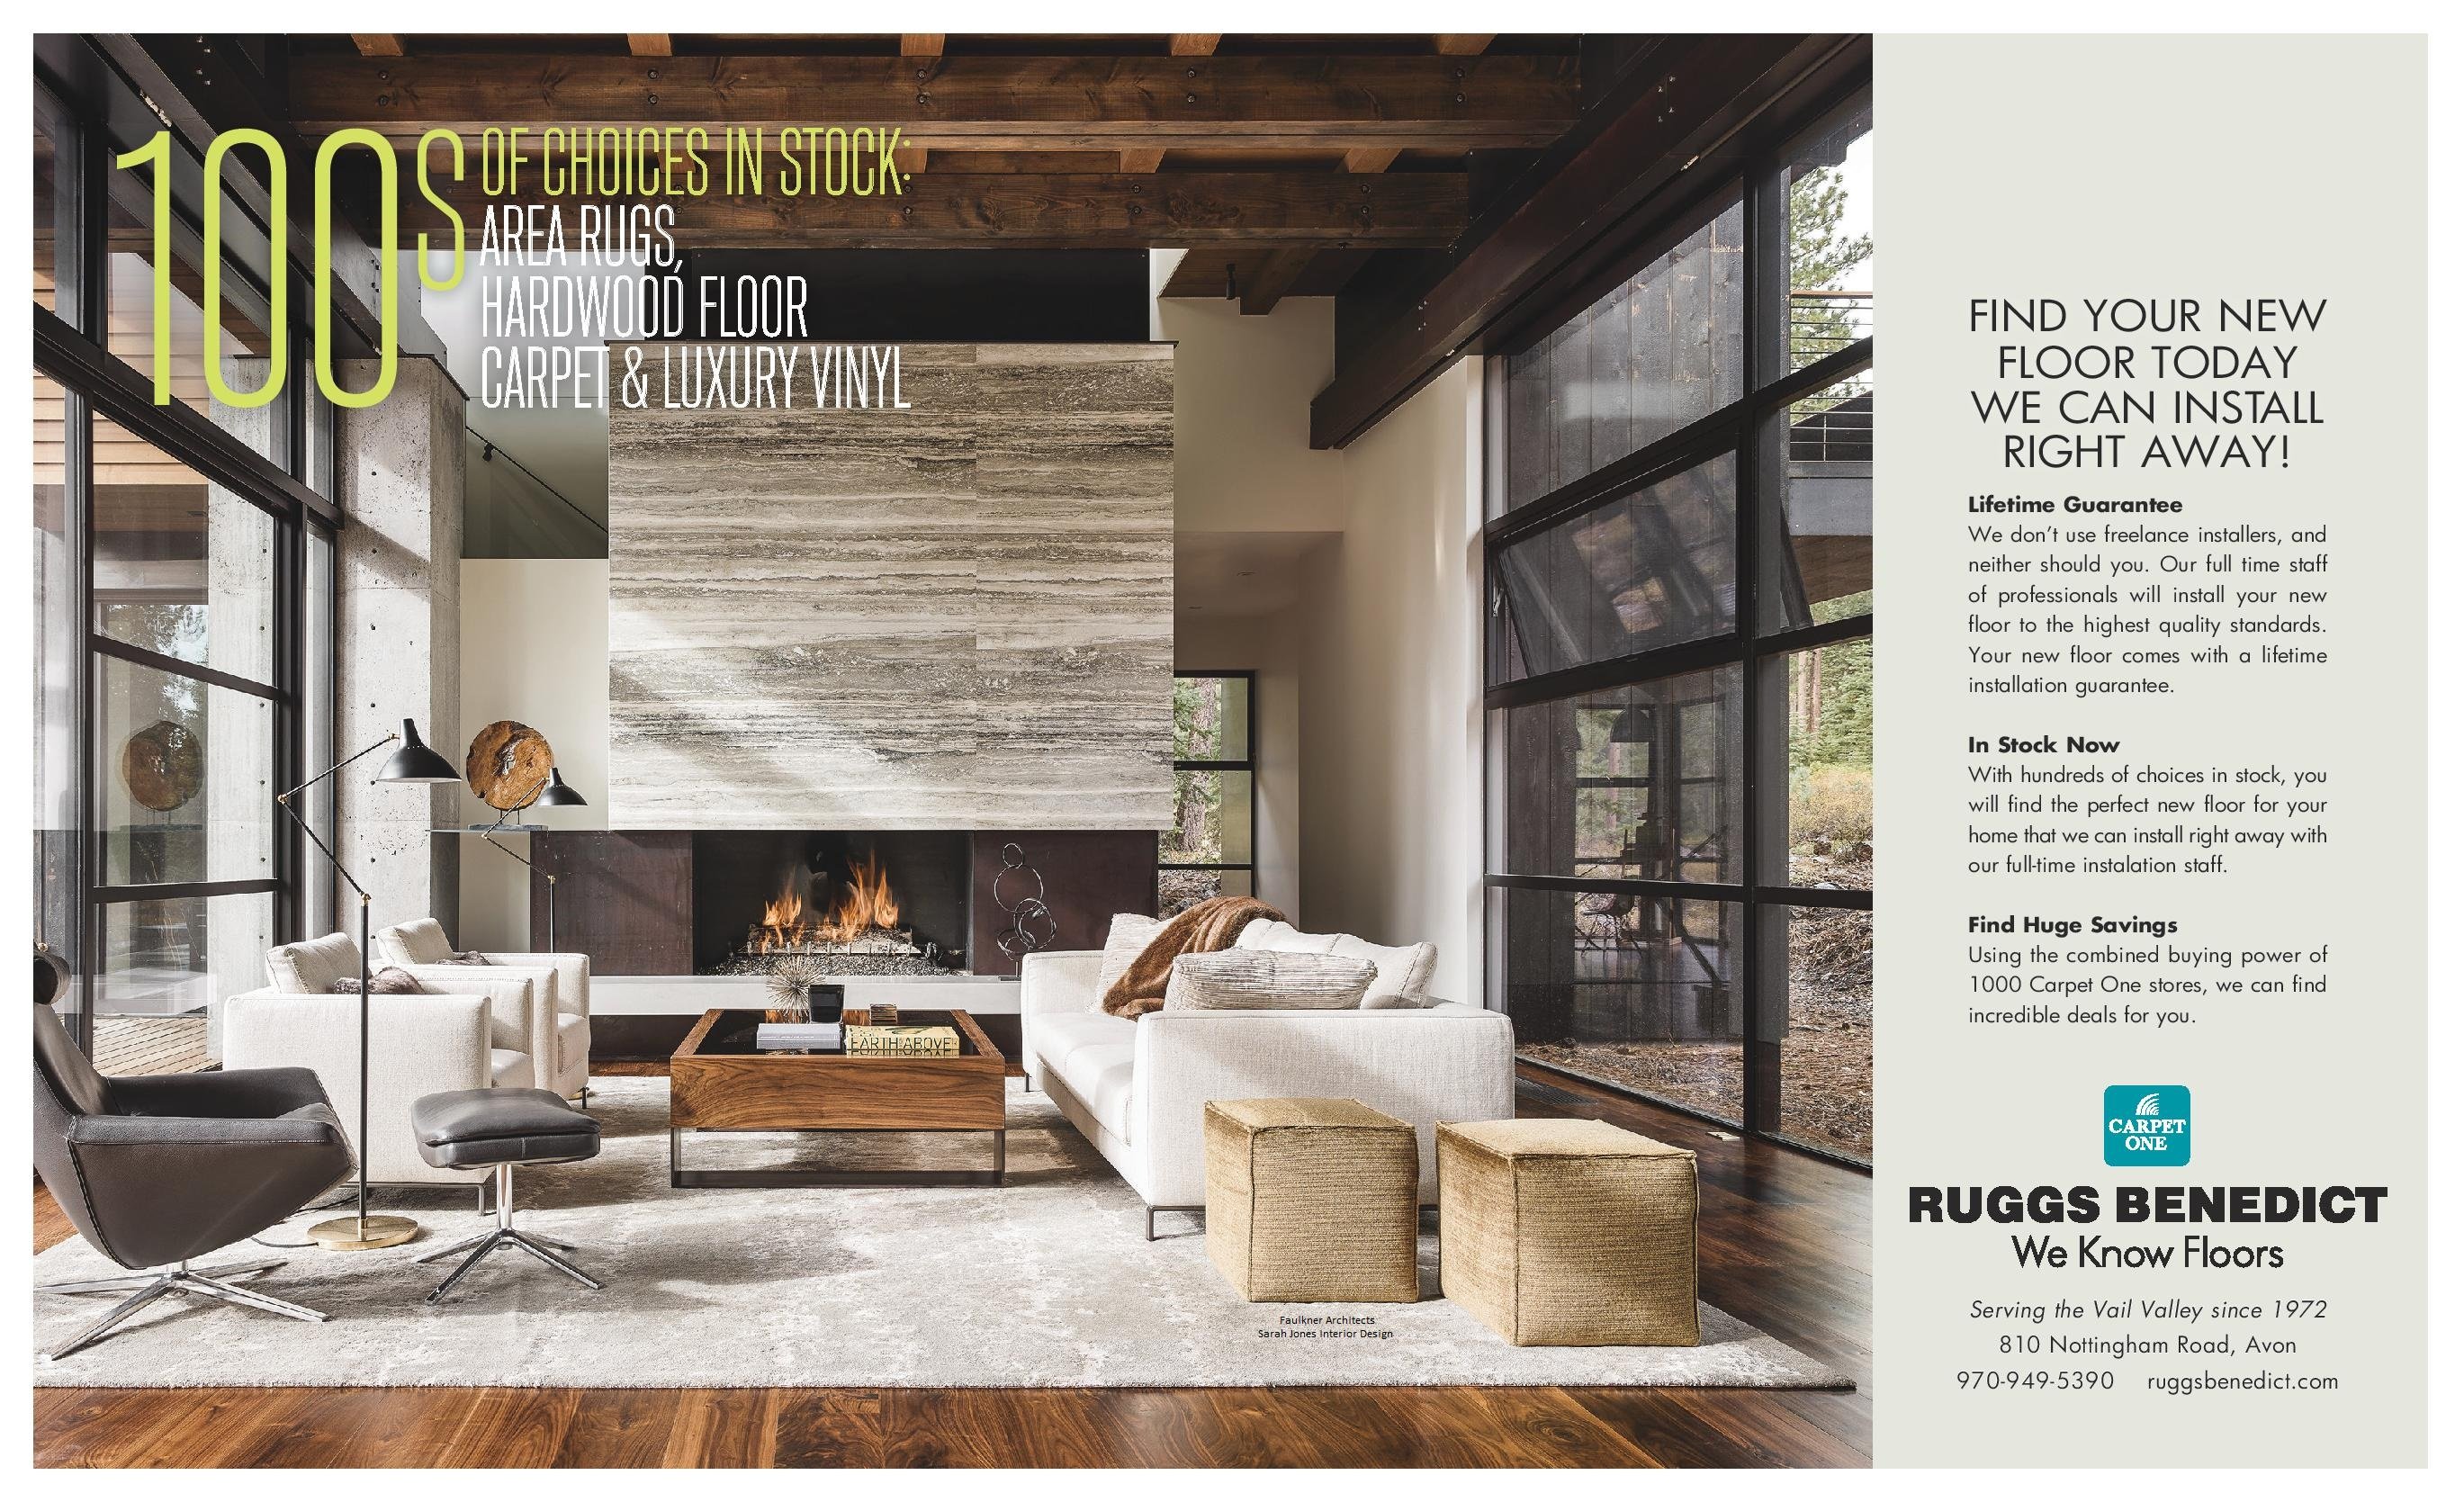 Ruggs Benedict flooring sale